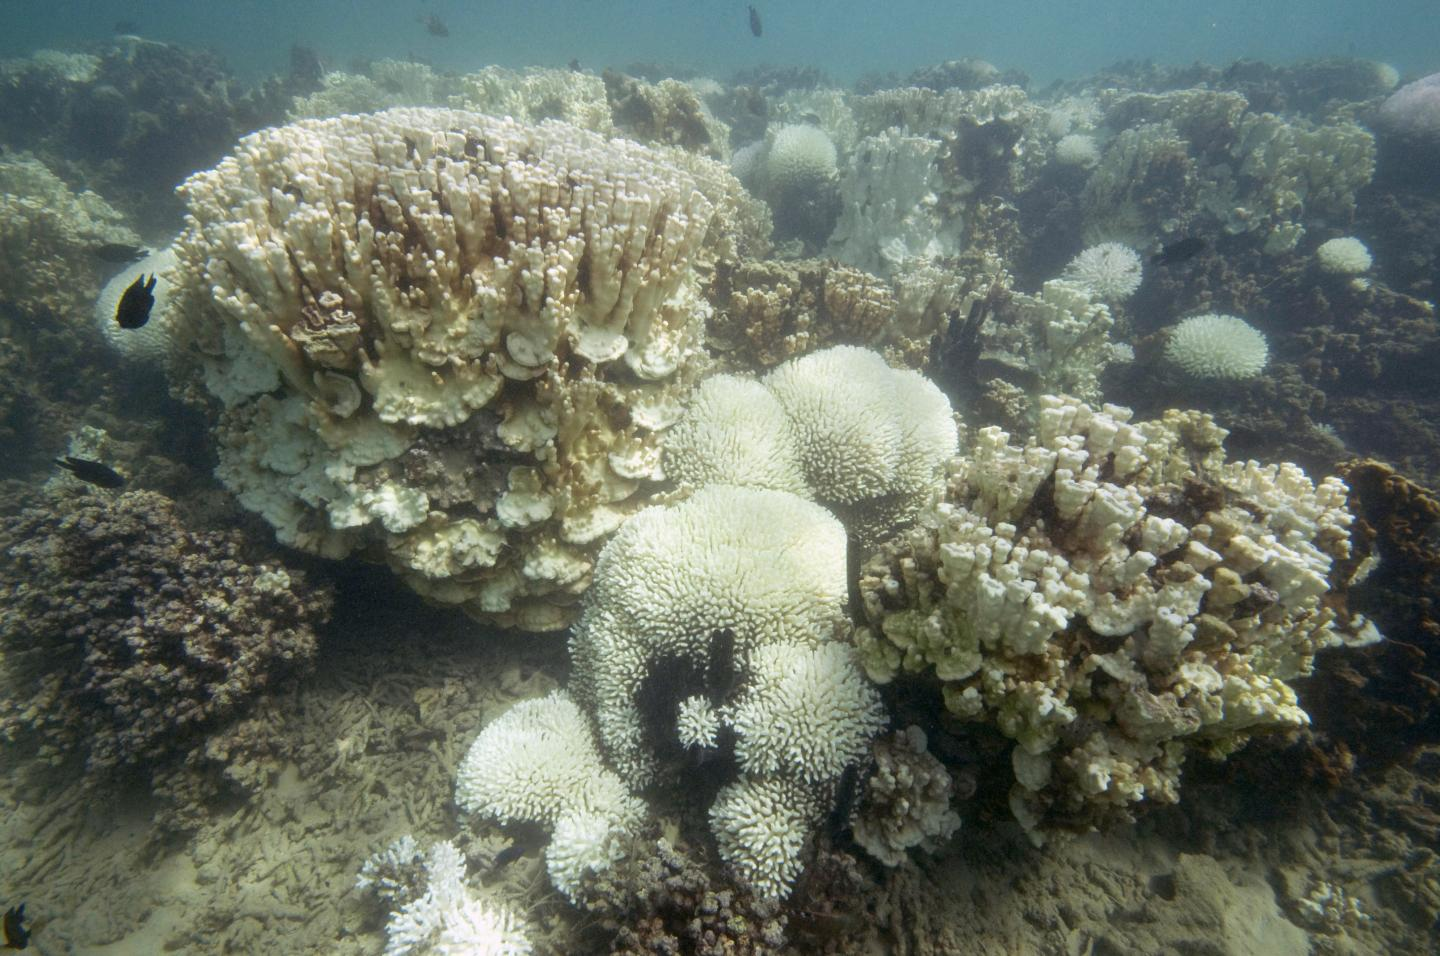 Severe Bleaching of Corals, Lord Howe Island 2010-2011